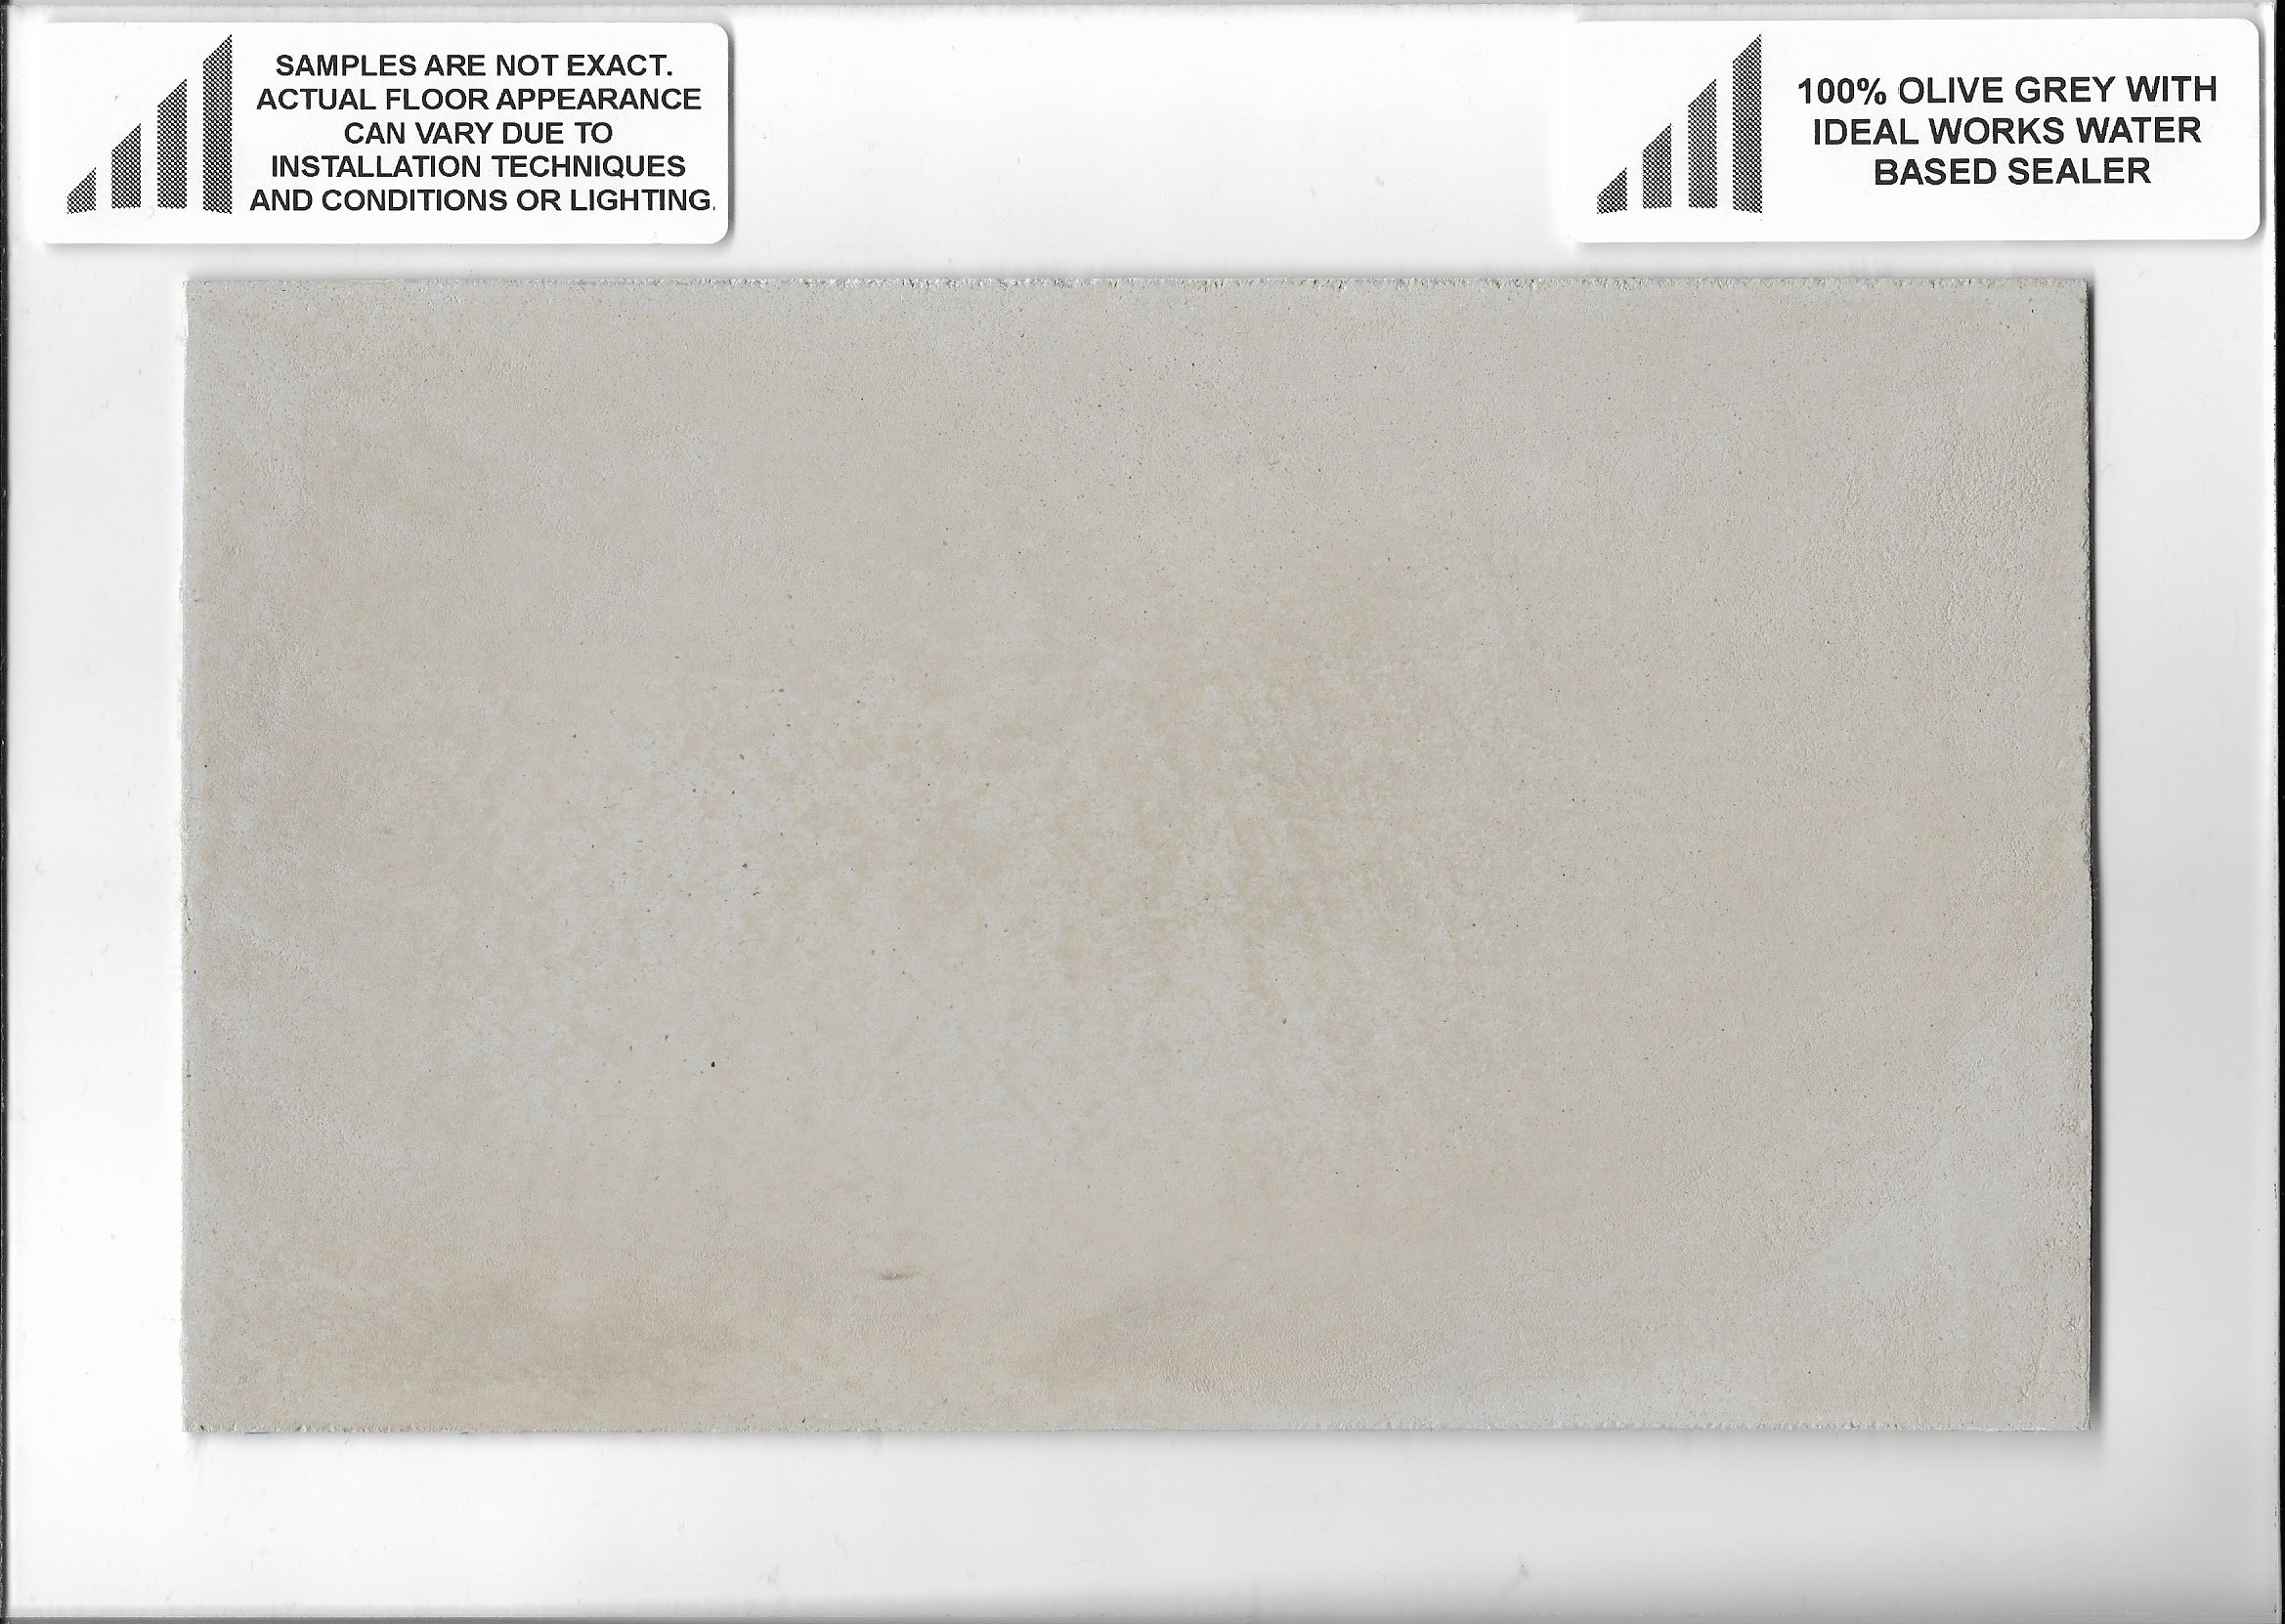 400-100 Percent Olive Grey with WB Sealer.jpg